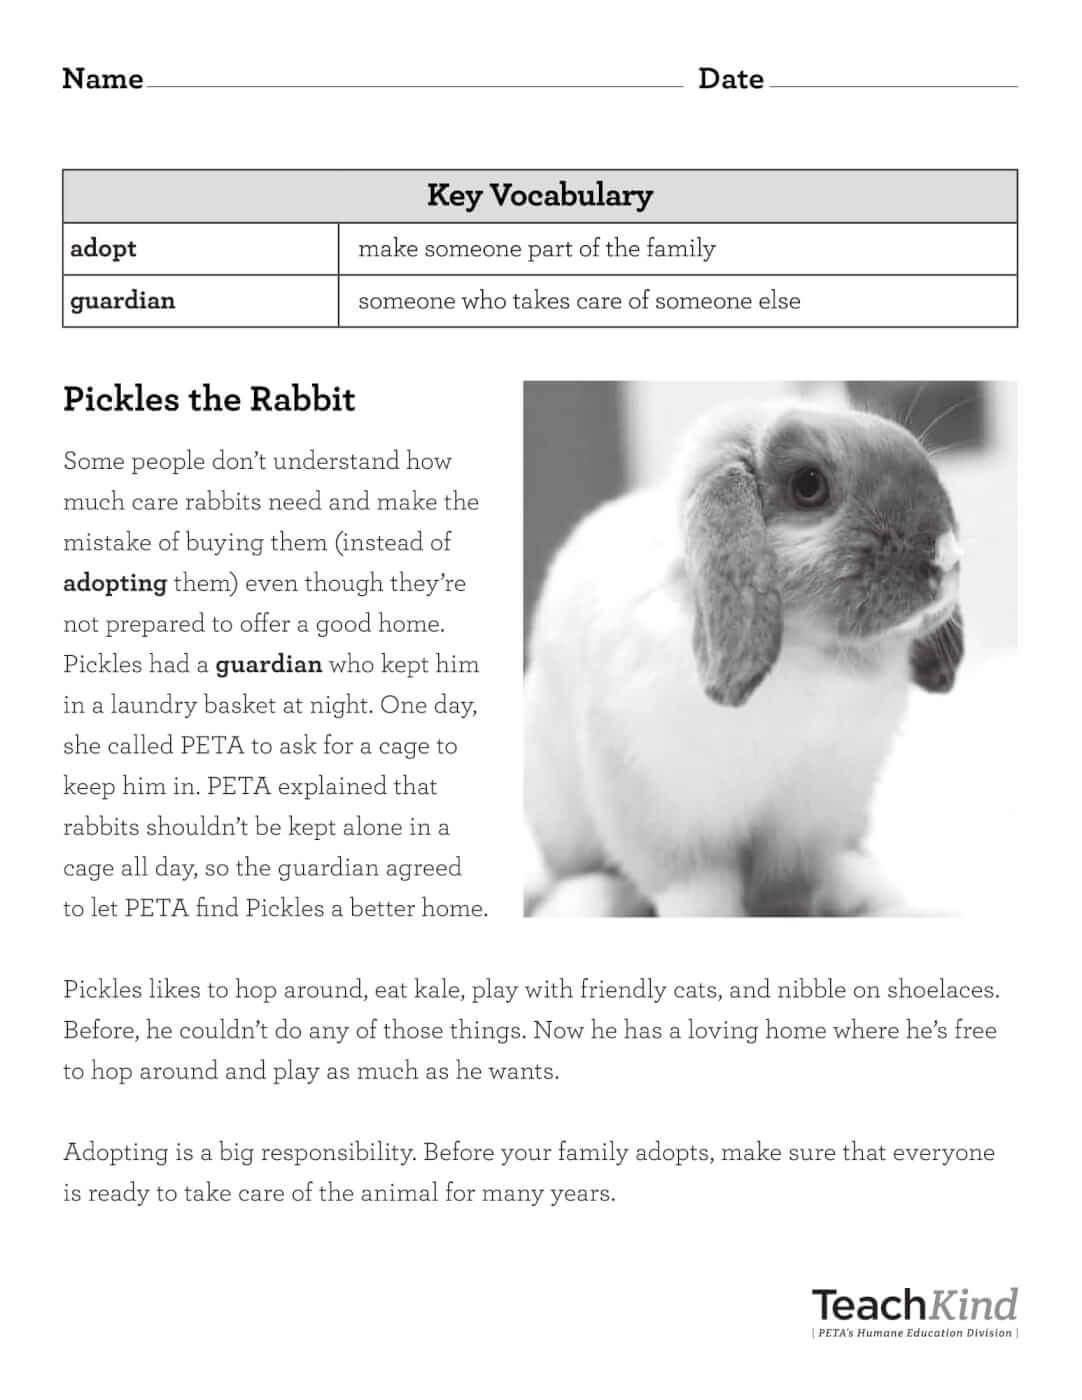 Teachkind Rescue Stories Pickles The Rabbit